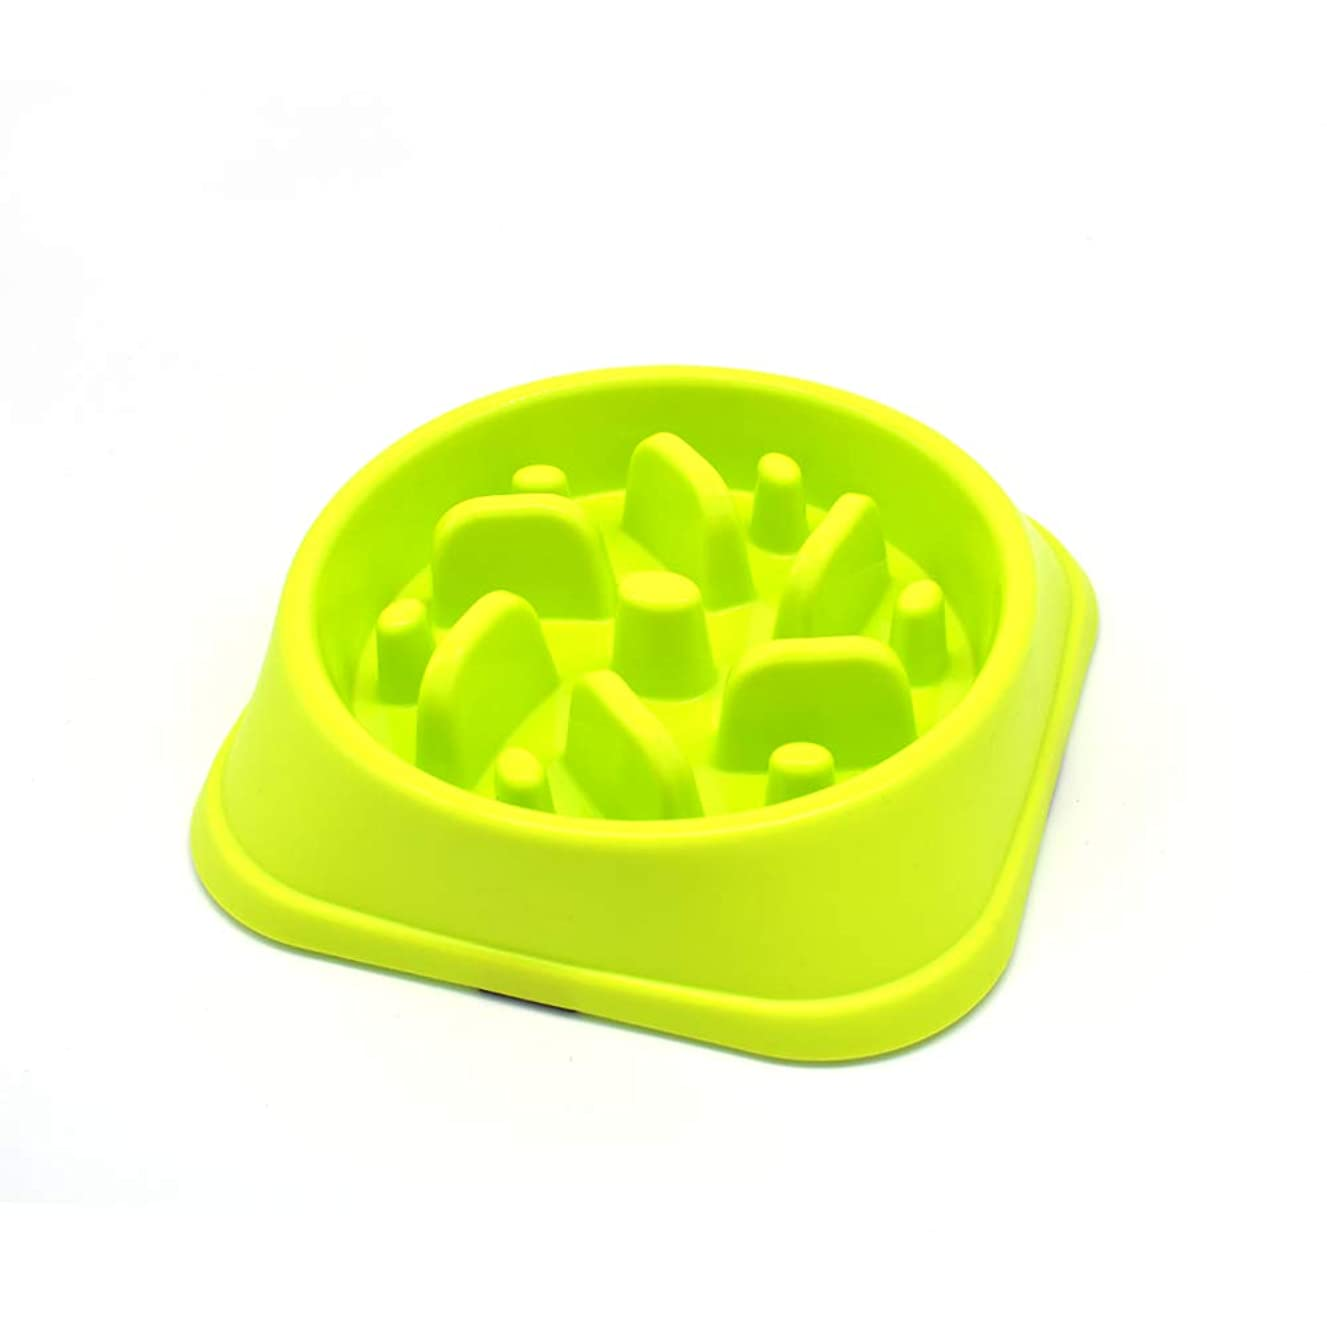 Dofyou Slow Feeder Dog Bowl, Non Slip Puzzle Bowl Fun Feeder Interactive Bloat Stop Dog Bowl, Slow Feed Pet Bowl for Large Medium Small Dogs